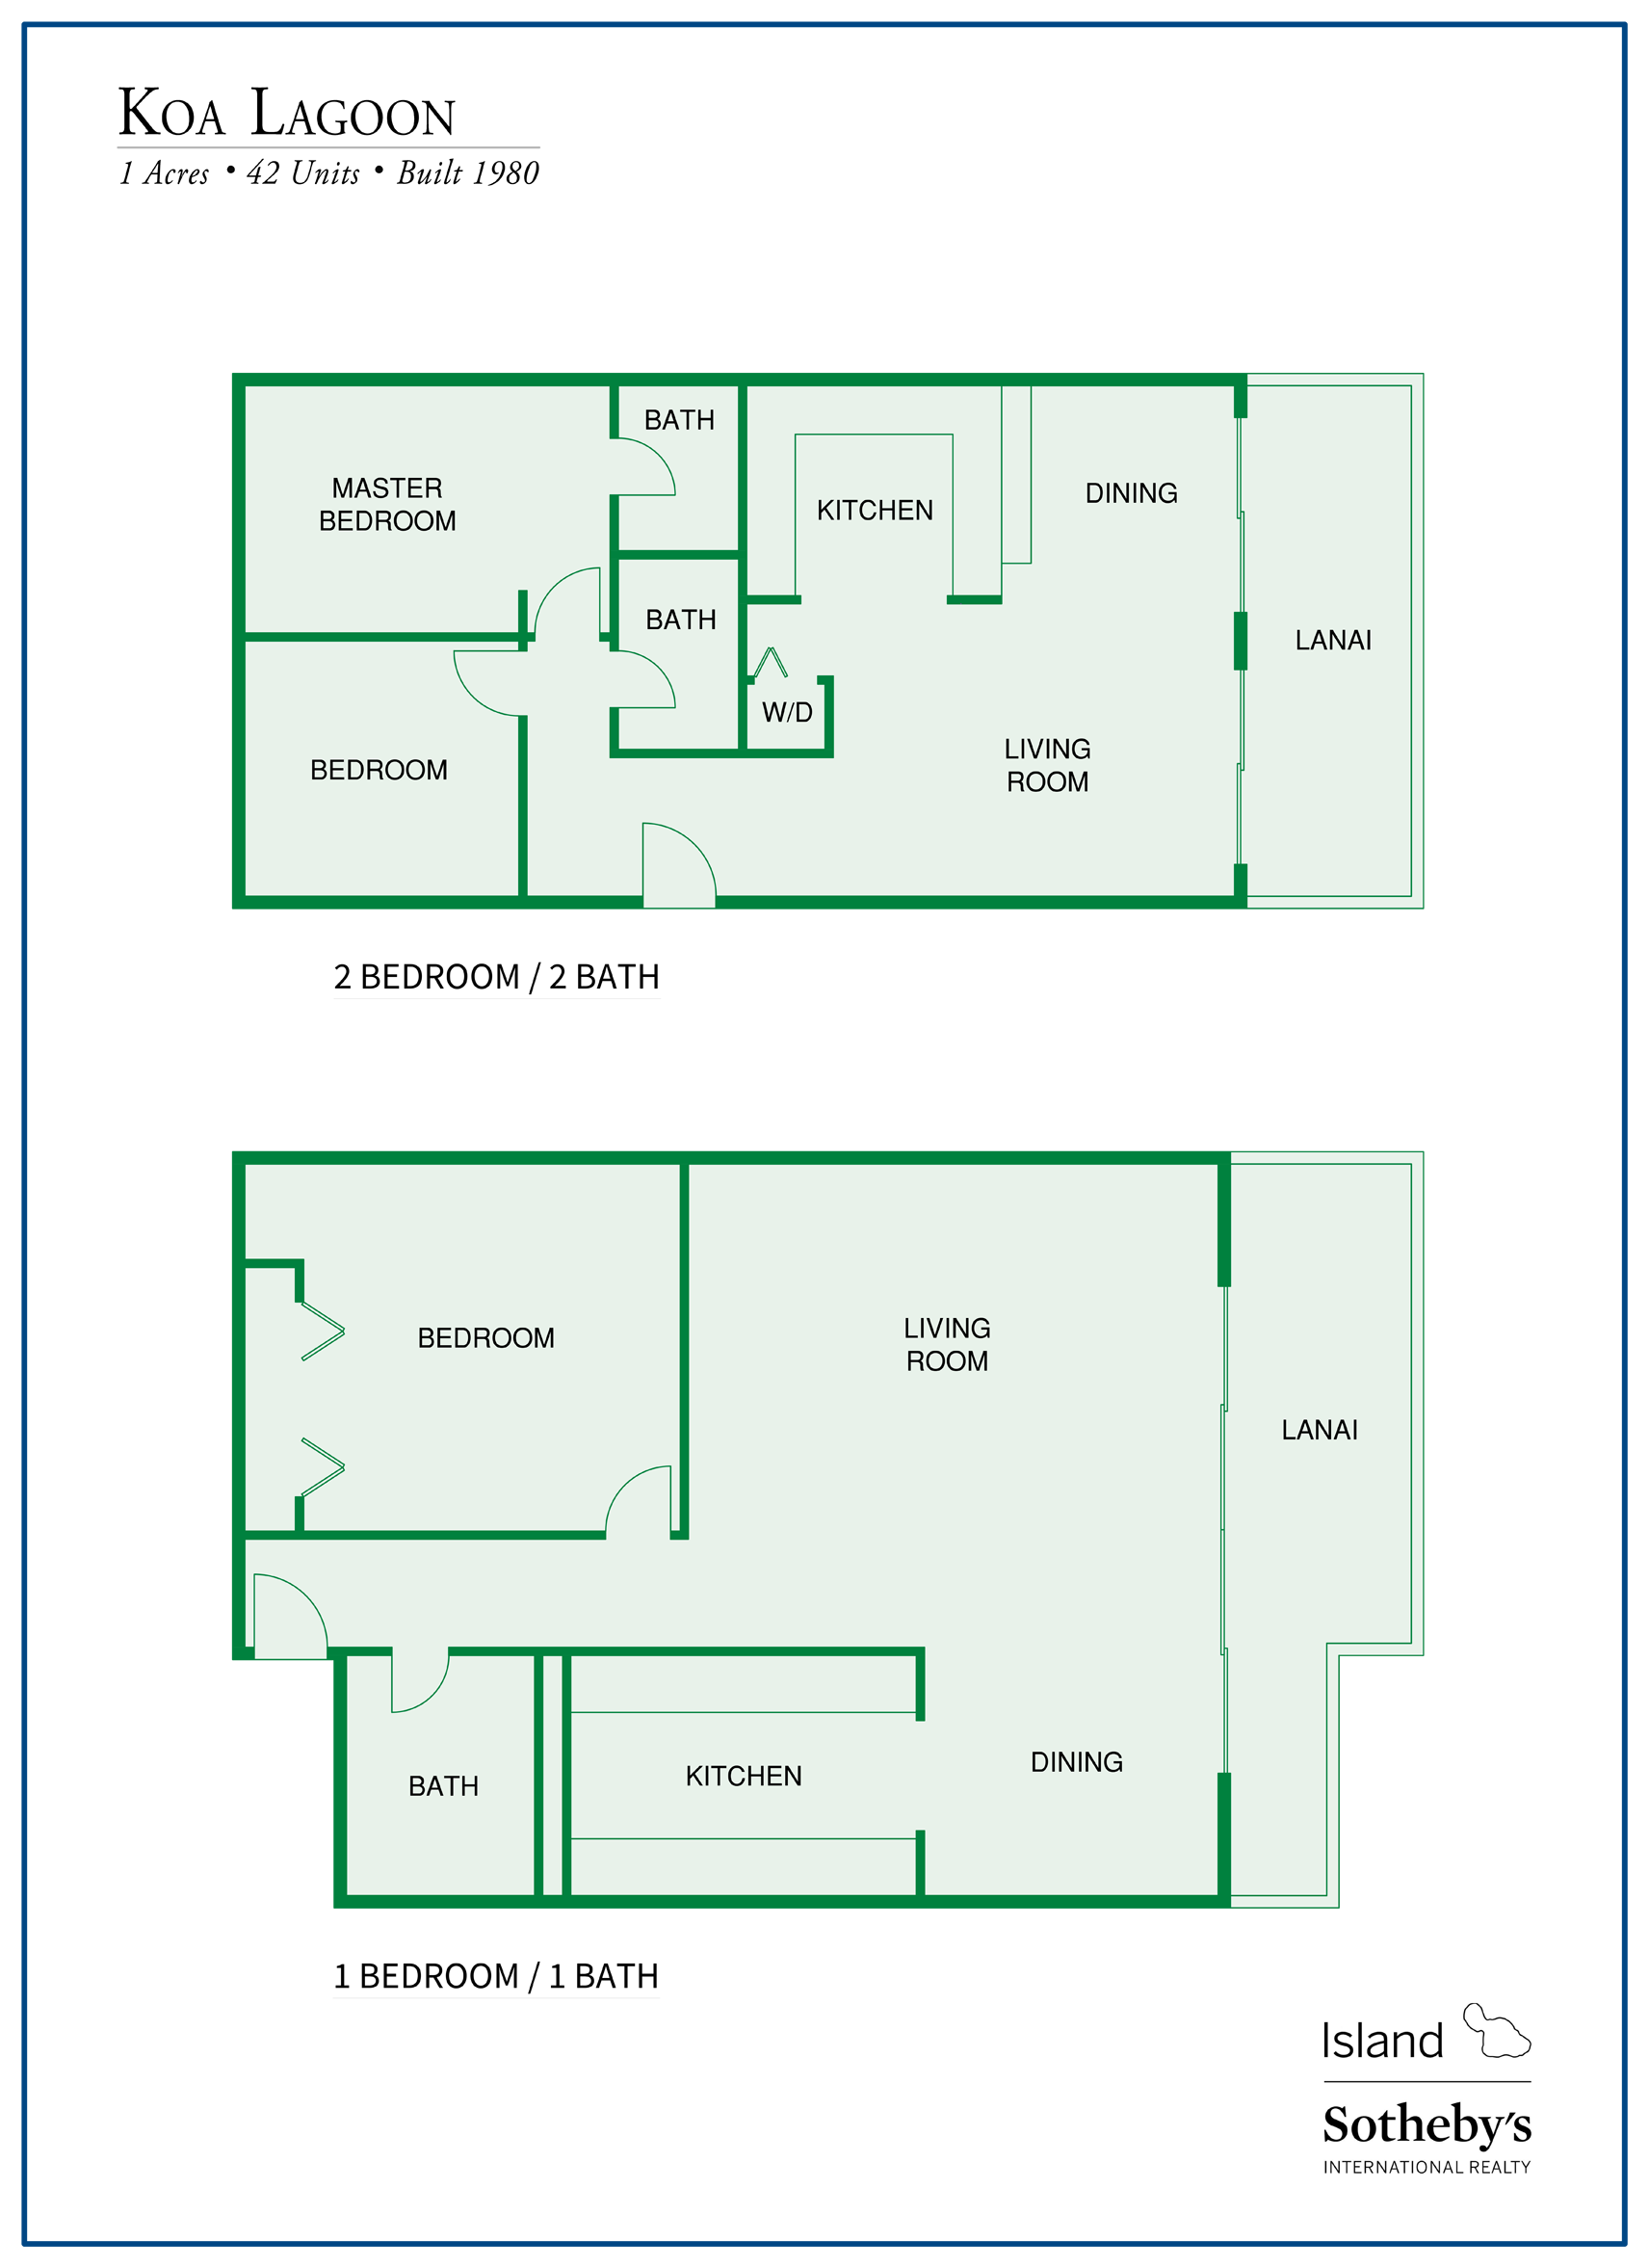 koa lagoon floor plans